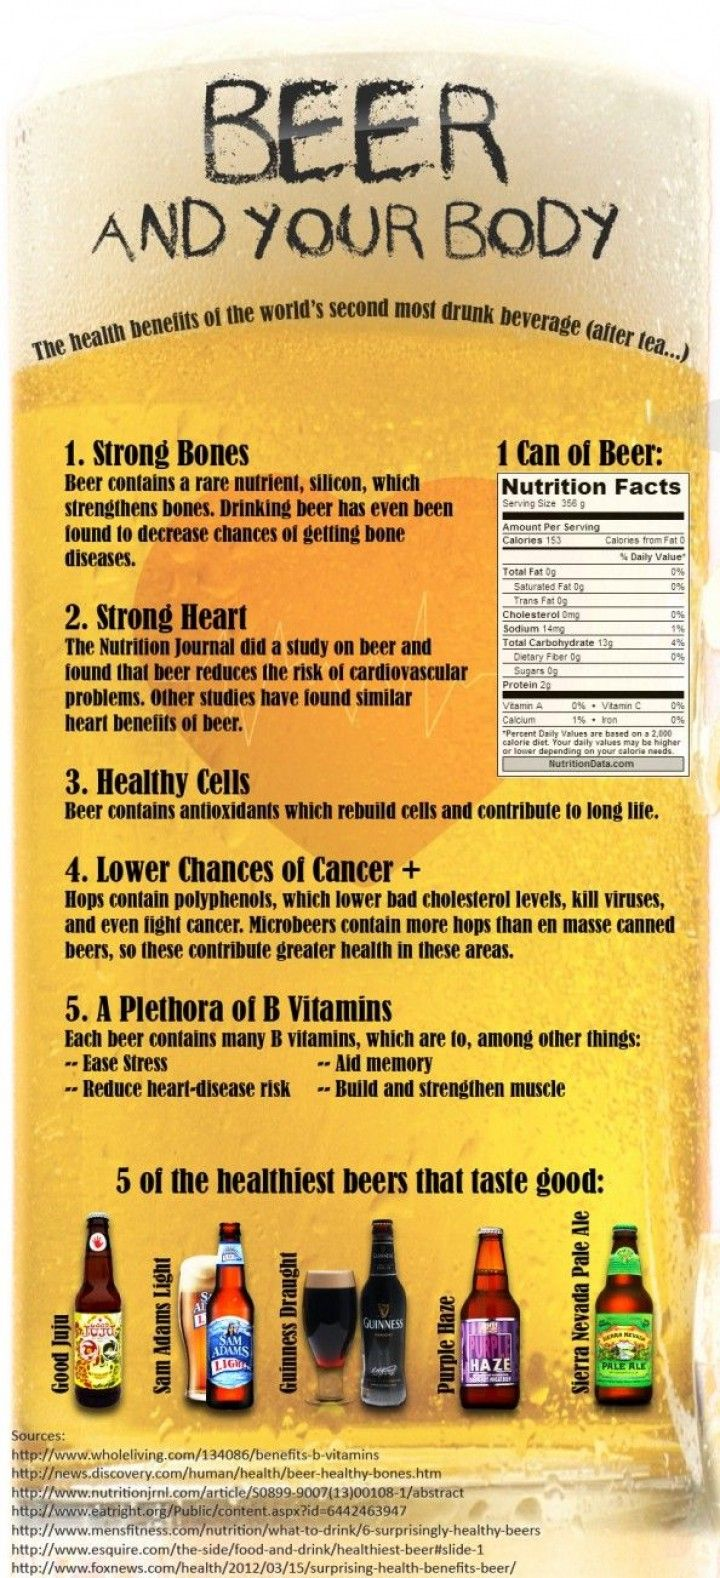 Beer and Your Body – Health Benefits of Beer